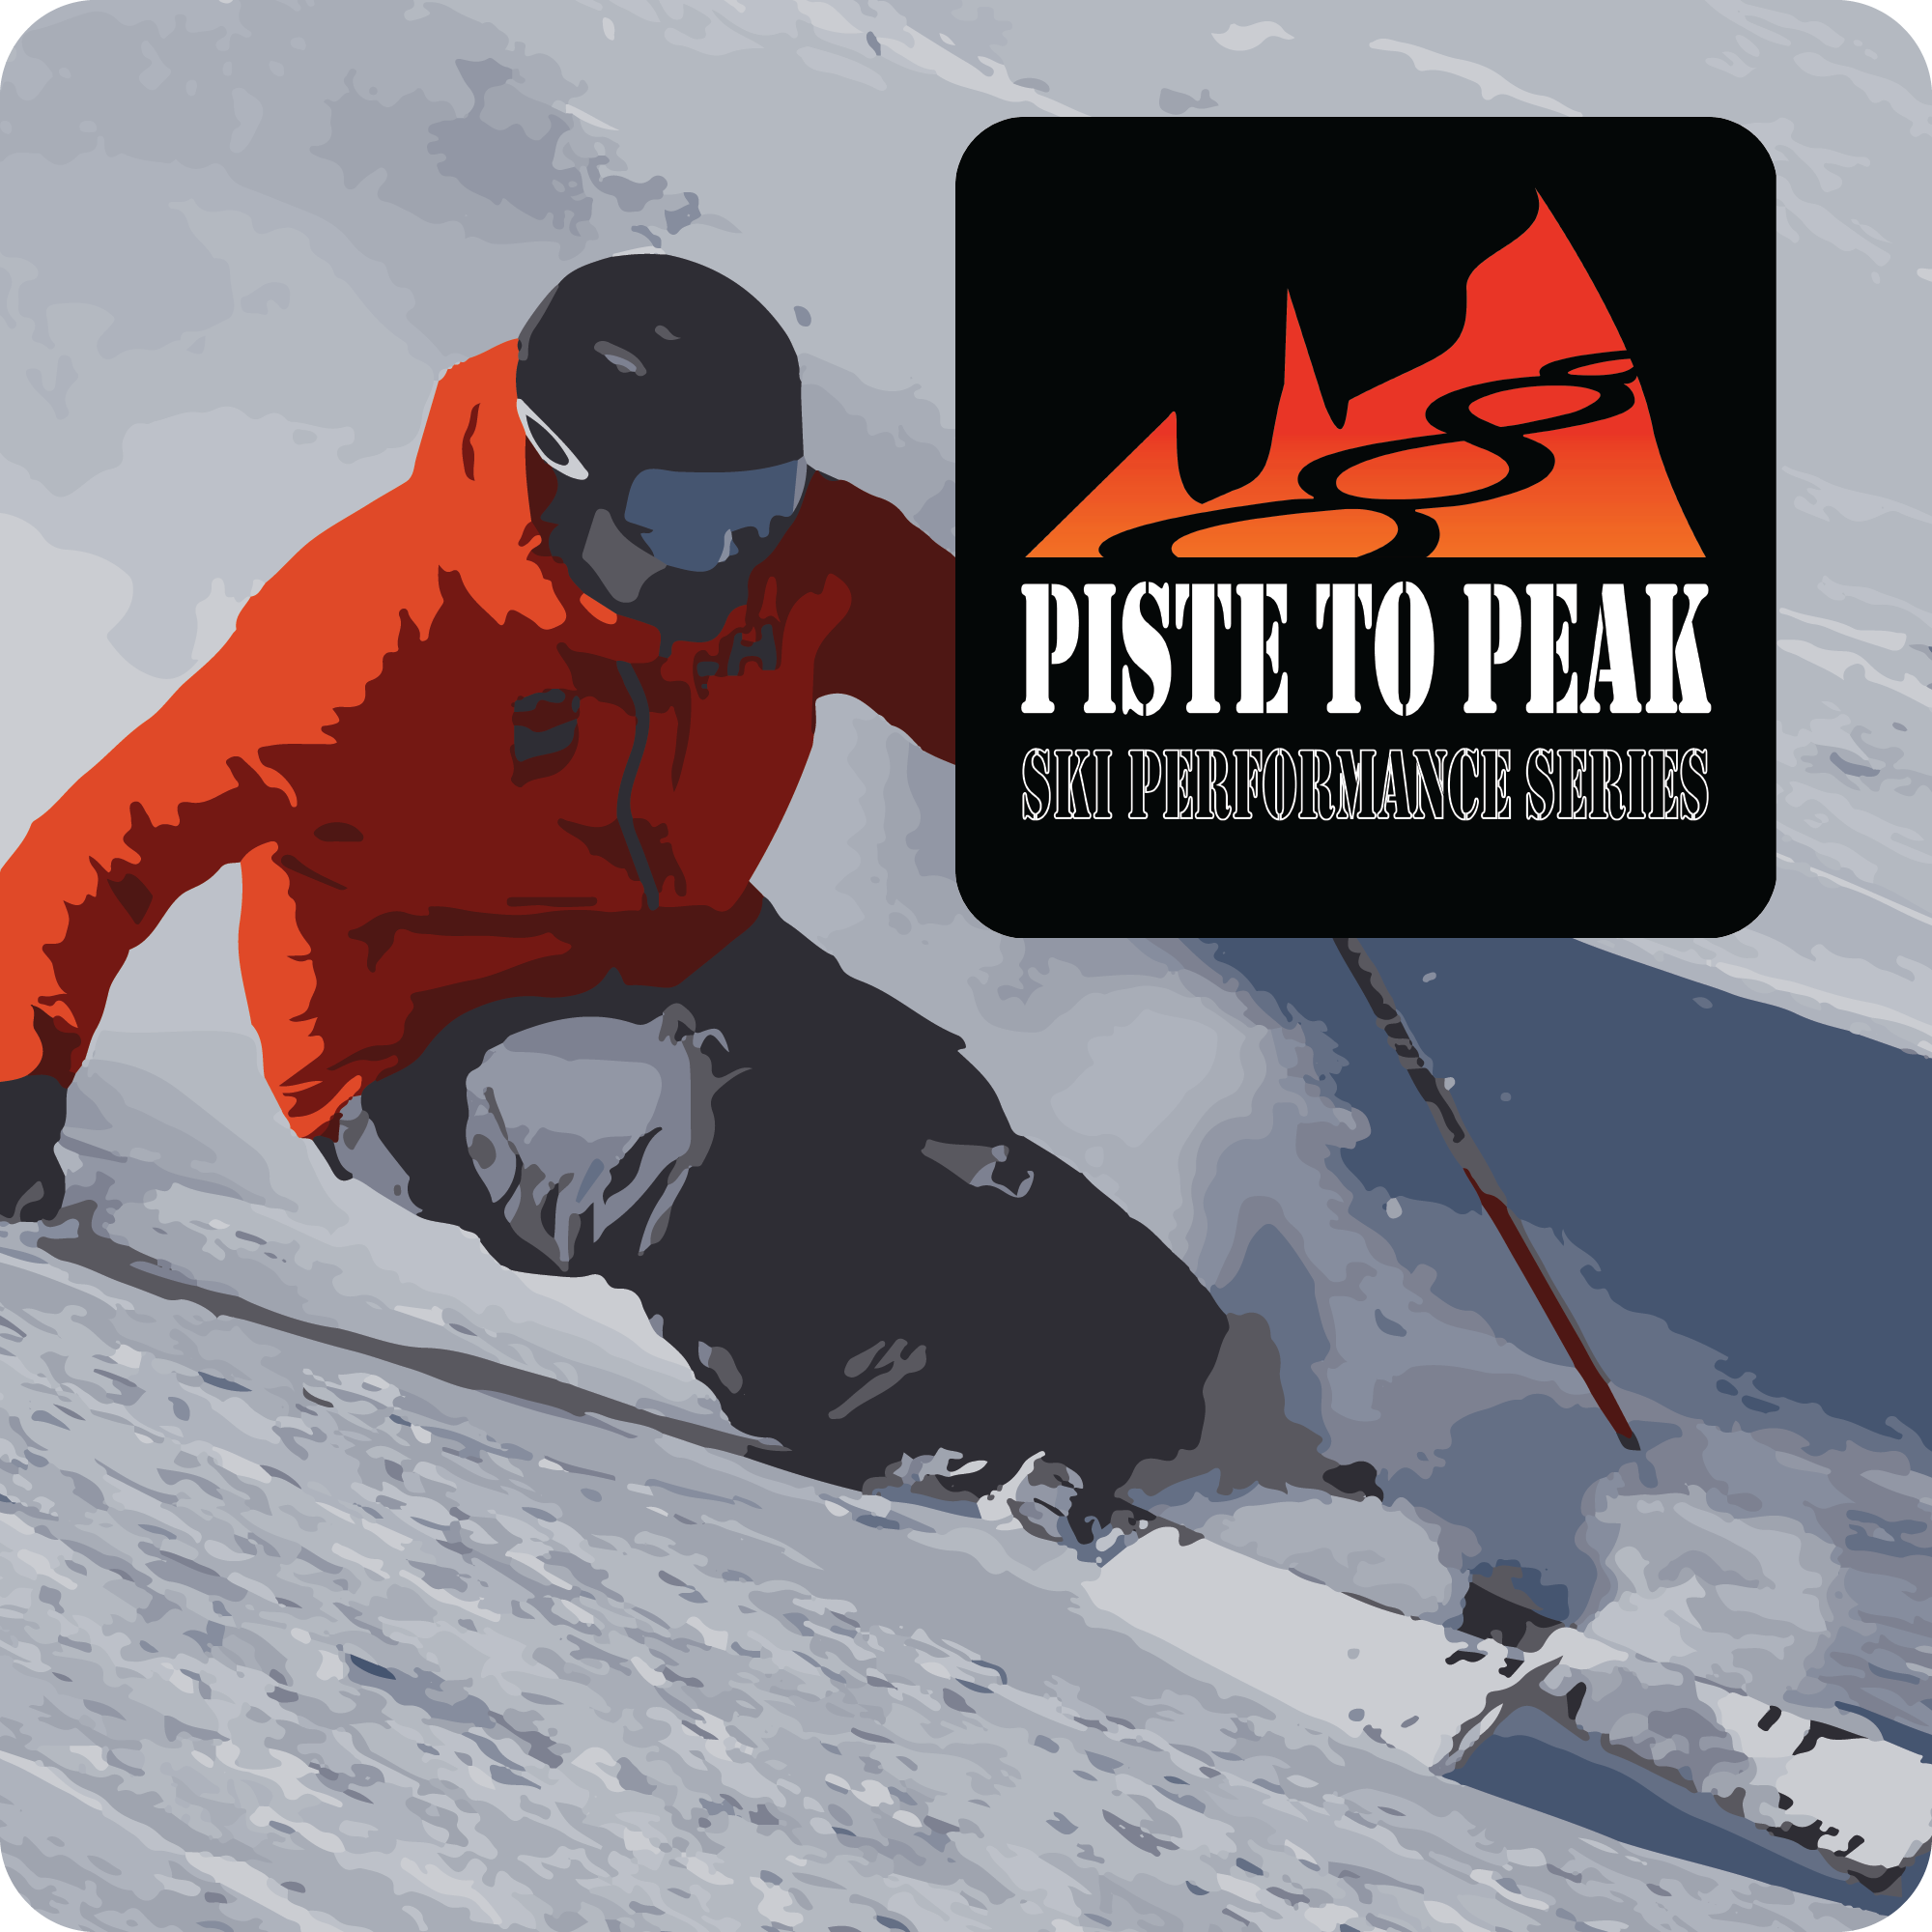 P2P3 - Piste to Peak Volume 3 - Skiing Carving